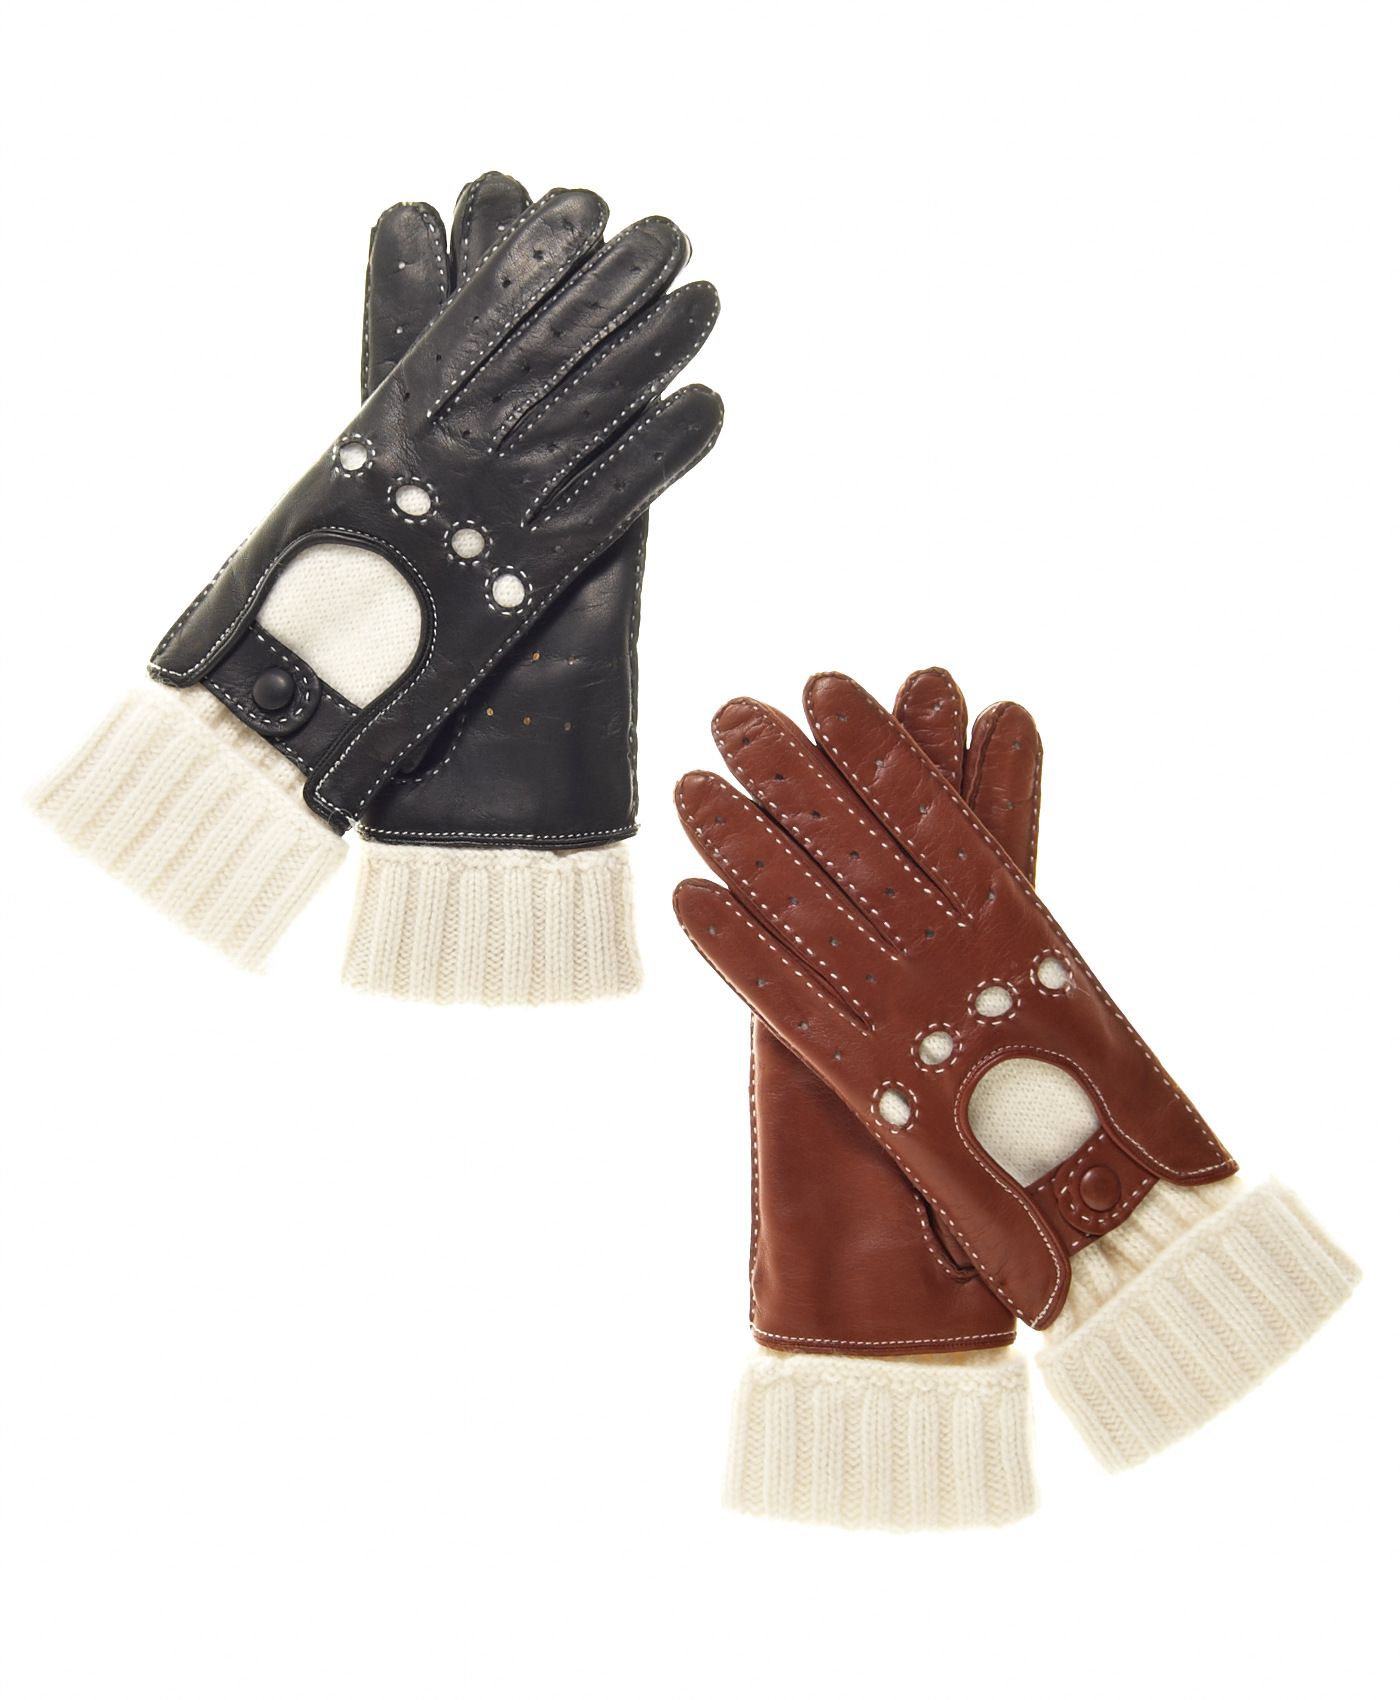 Mens leather driving gloves australia - Gallery Of Lined Leather Driving Gloves